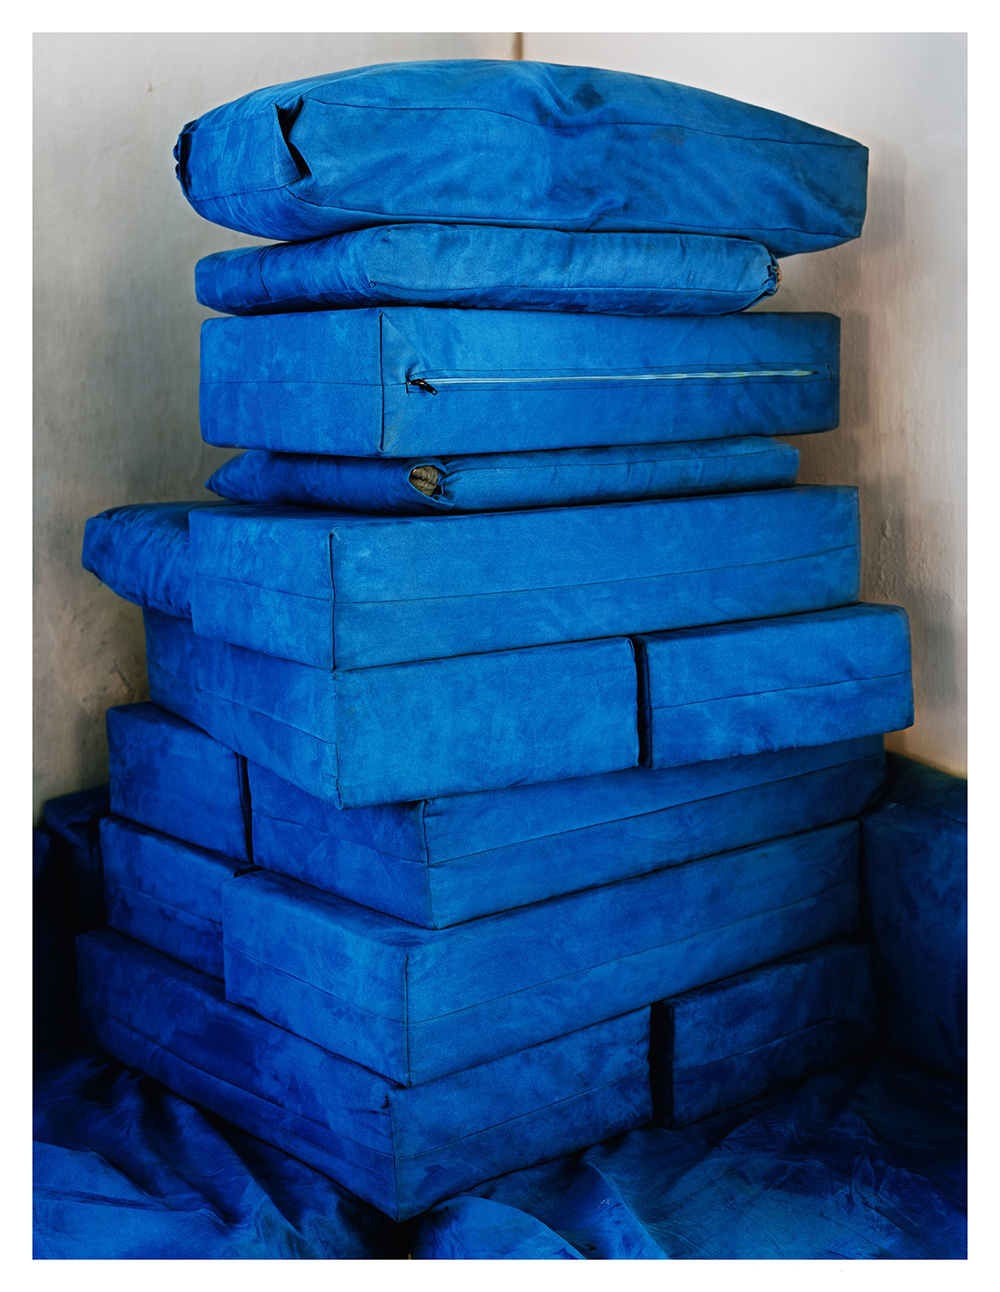 Untitled (Blue Pillows), 2010, Edition 2/6, C-print, 76,2 x 101,6 cm  